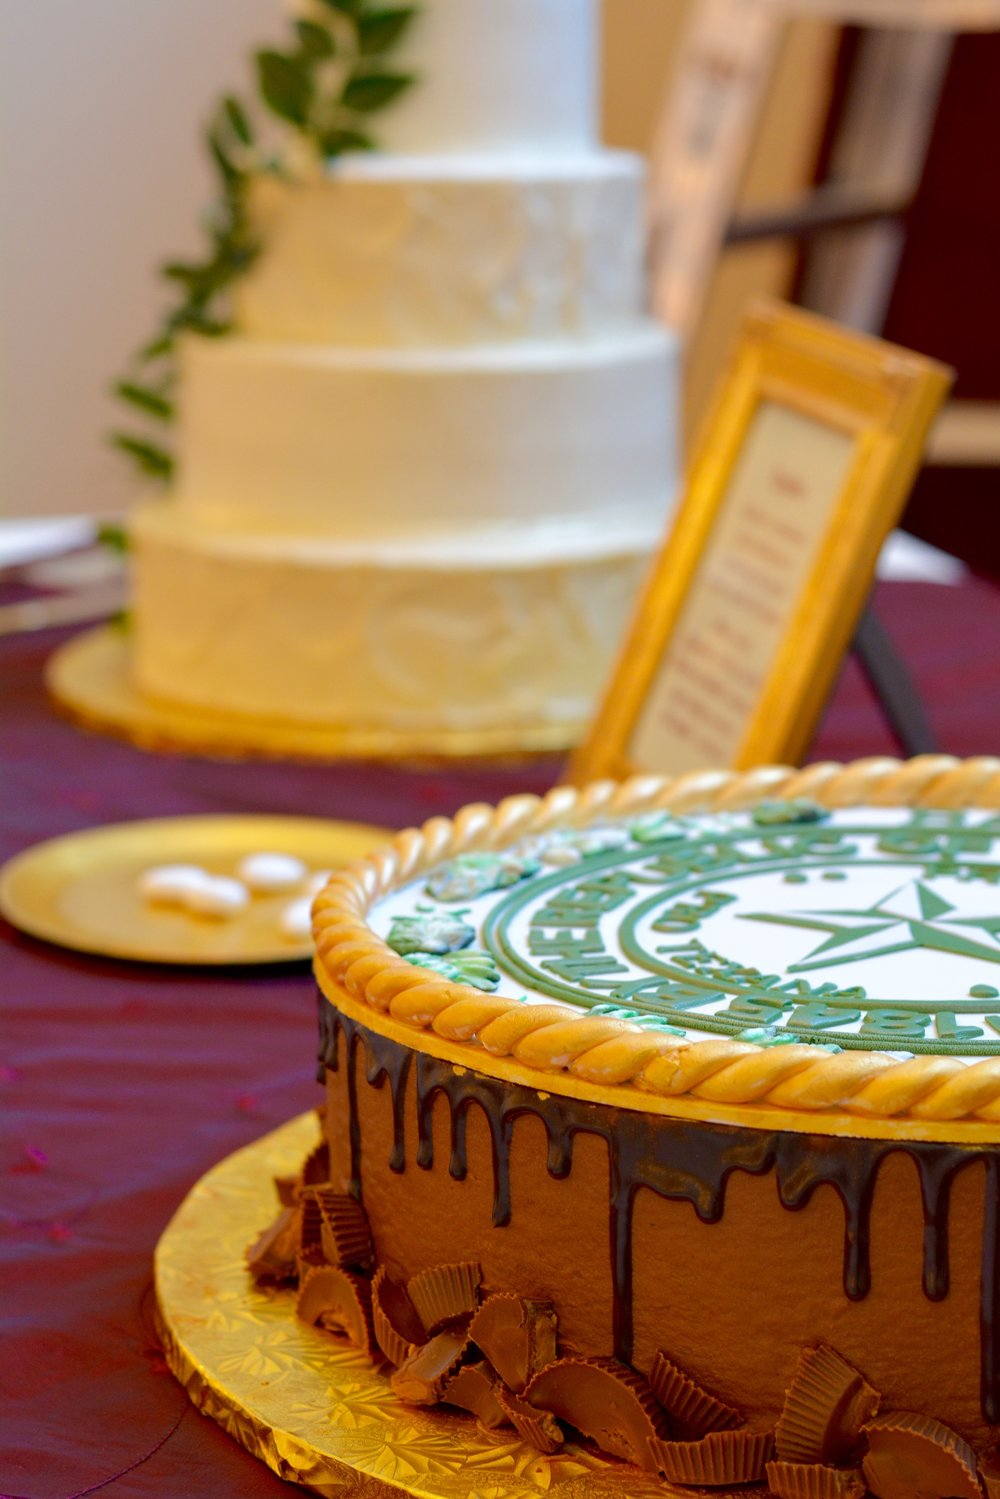 dallas wedding cake bakeries, annie's culinary creations, wedding cakes, baylor grooms cake, baylor seal cake, chocolate peanut butter cake, champange cake, gold and white cake with greenery, bakery in dallas, heidi lockhart somes photography, greek koufeta